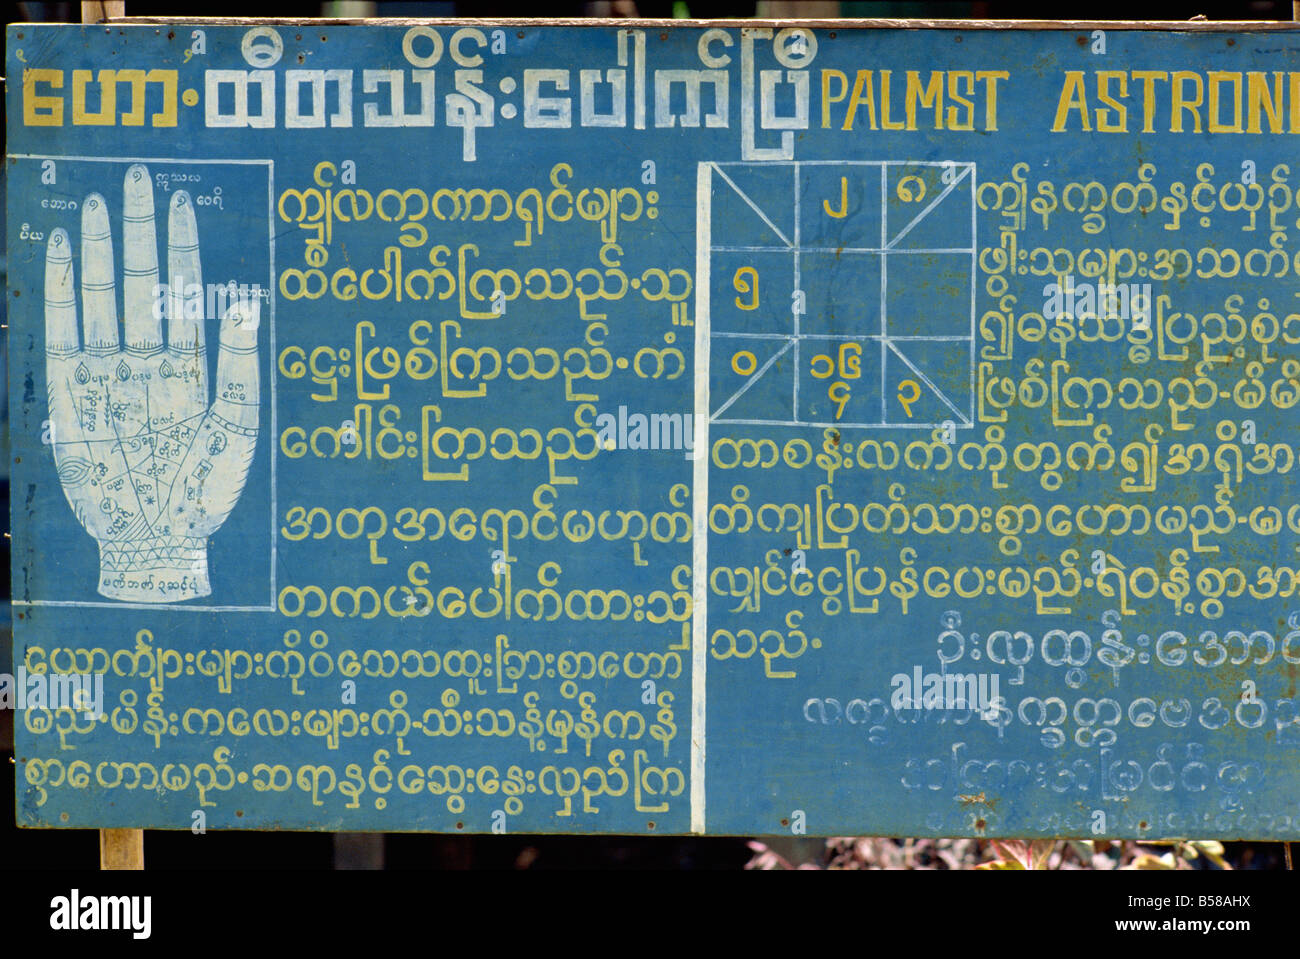 Myanmar Astrology Stock Photos & Myanmar Astrology Stock